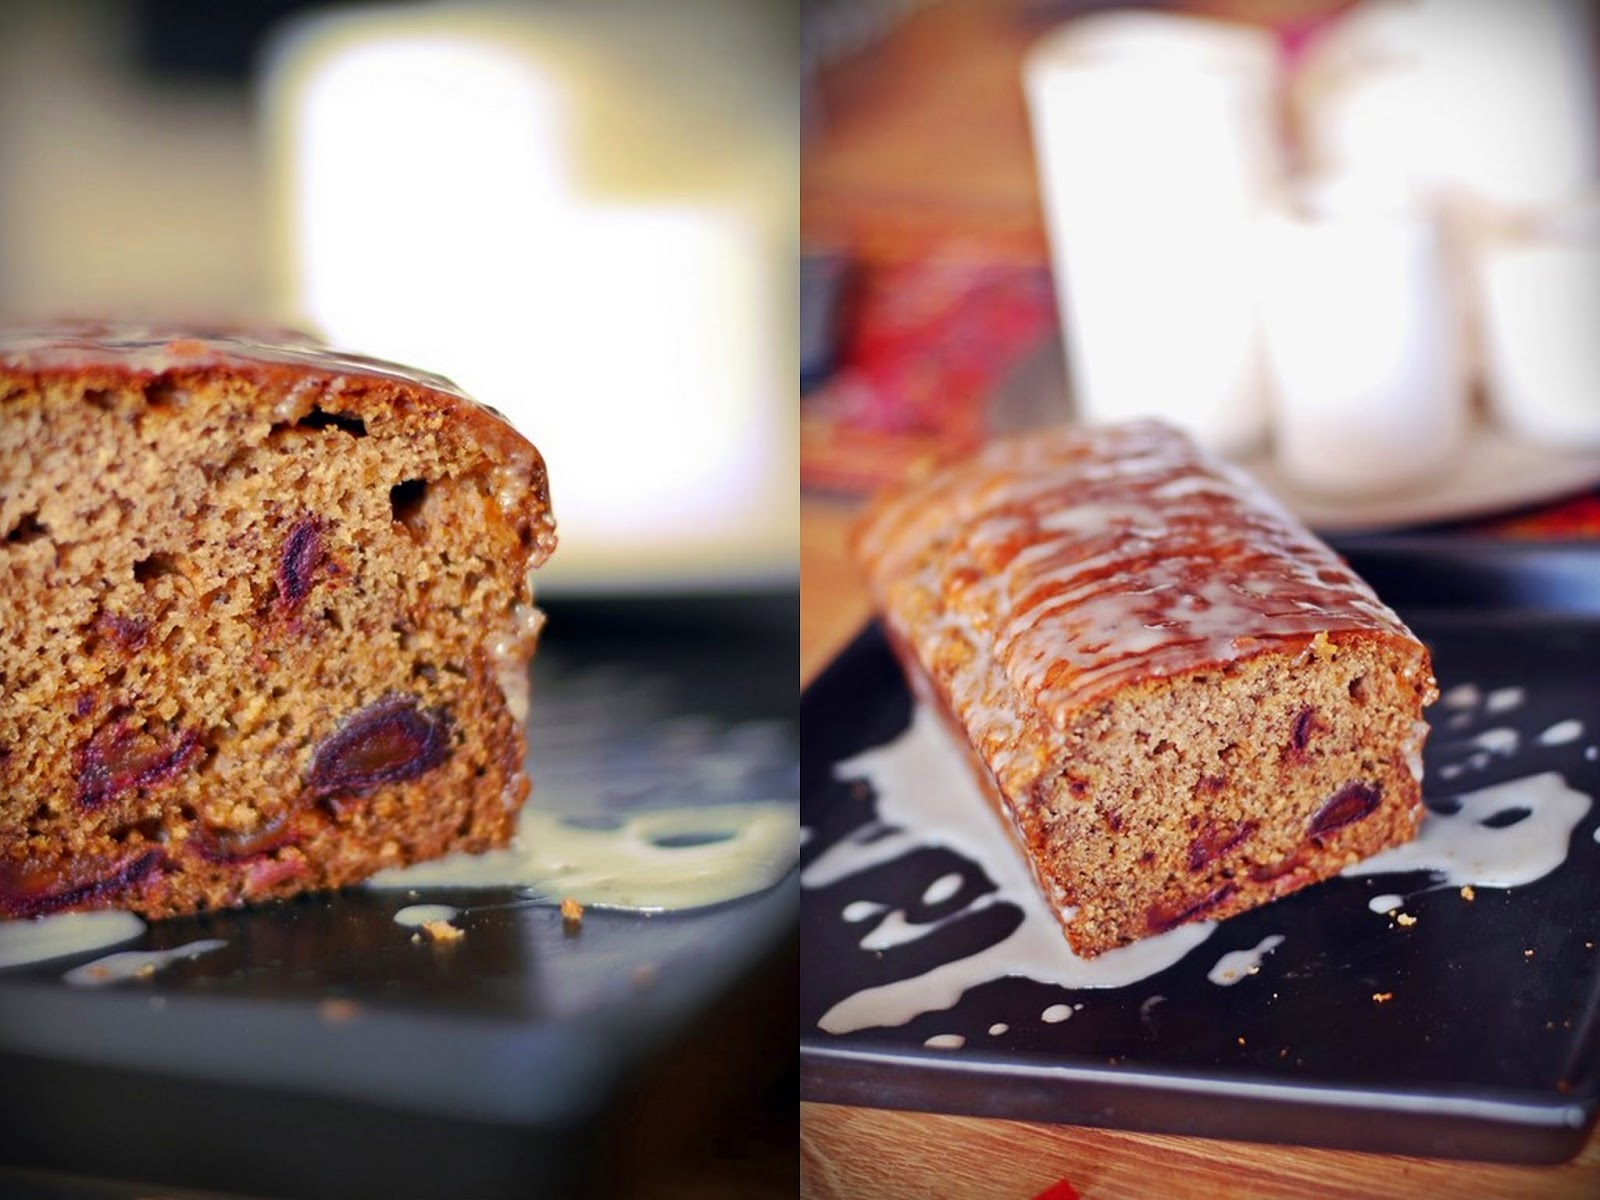 Buttered Up: Spiced Banana & Date Loaf